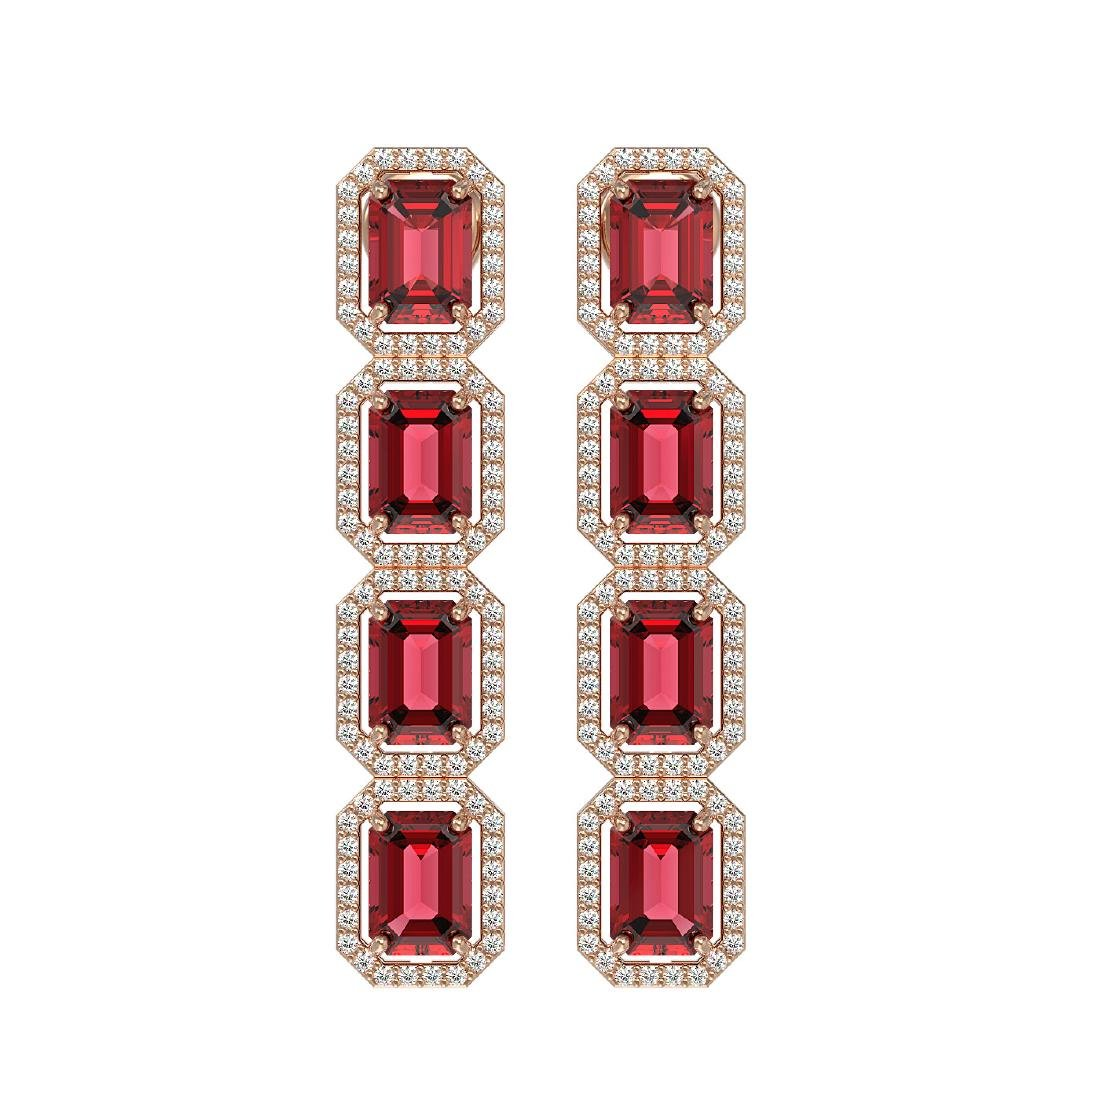 12.41 CTW Tourmaline & Diamond Halo Earrings 10K Rose